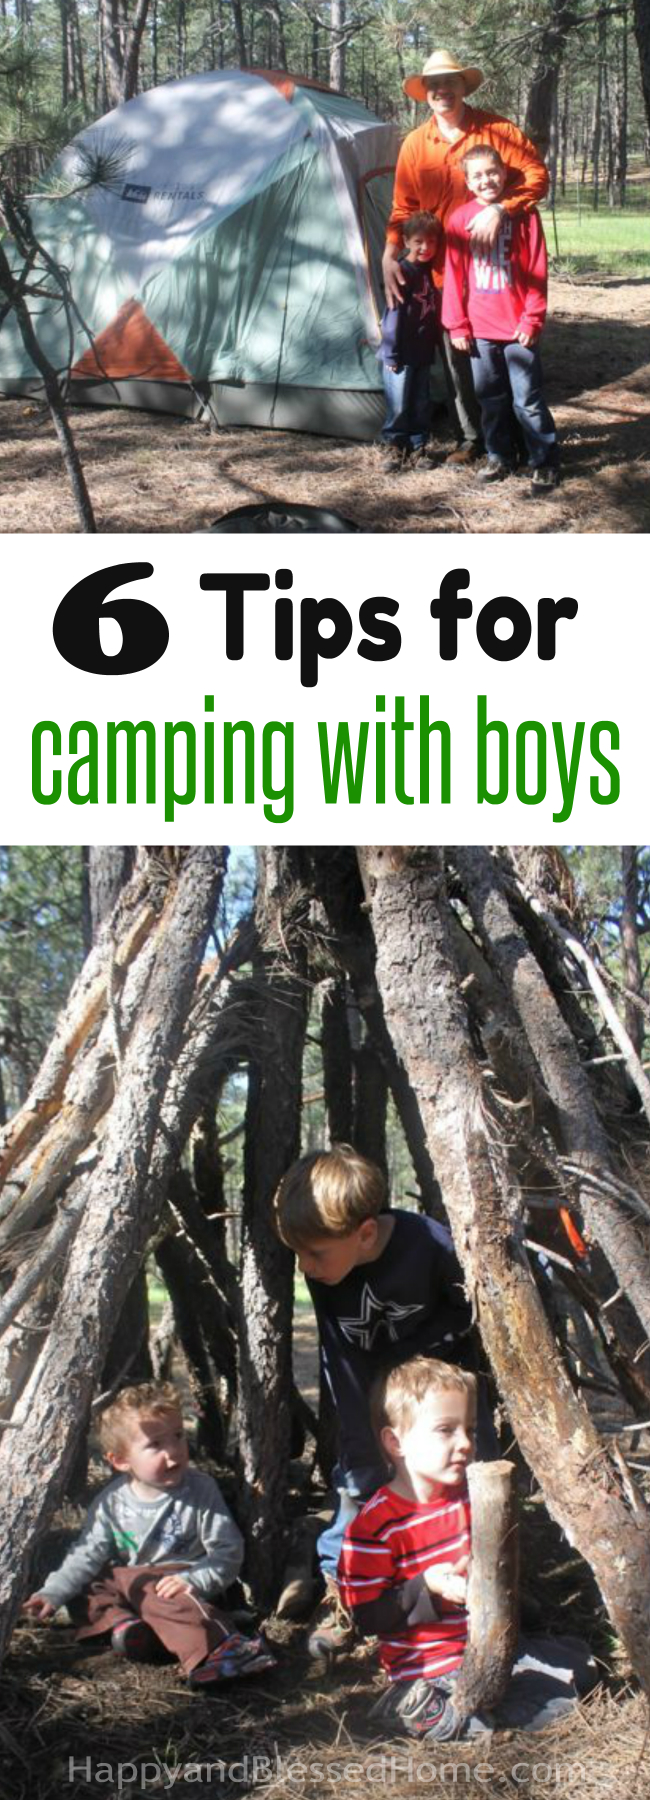 6 Tips for Camping with Boys with activities and gear ideas from HappyandBlessedHome.com